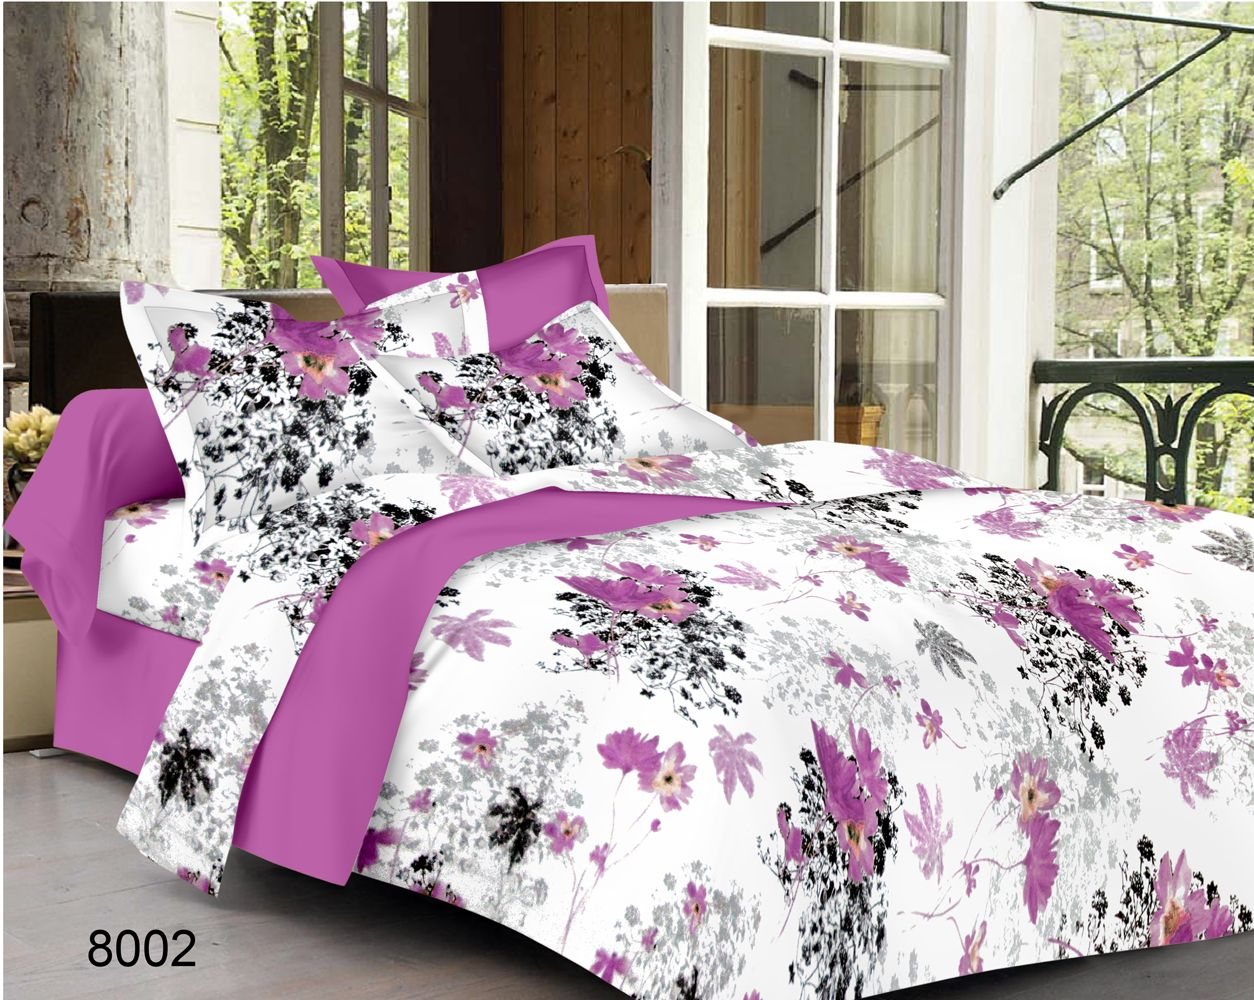 Buy luxurious-8 cotton bed sheet lowest price shopping,Printed ...